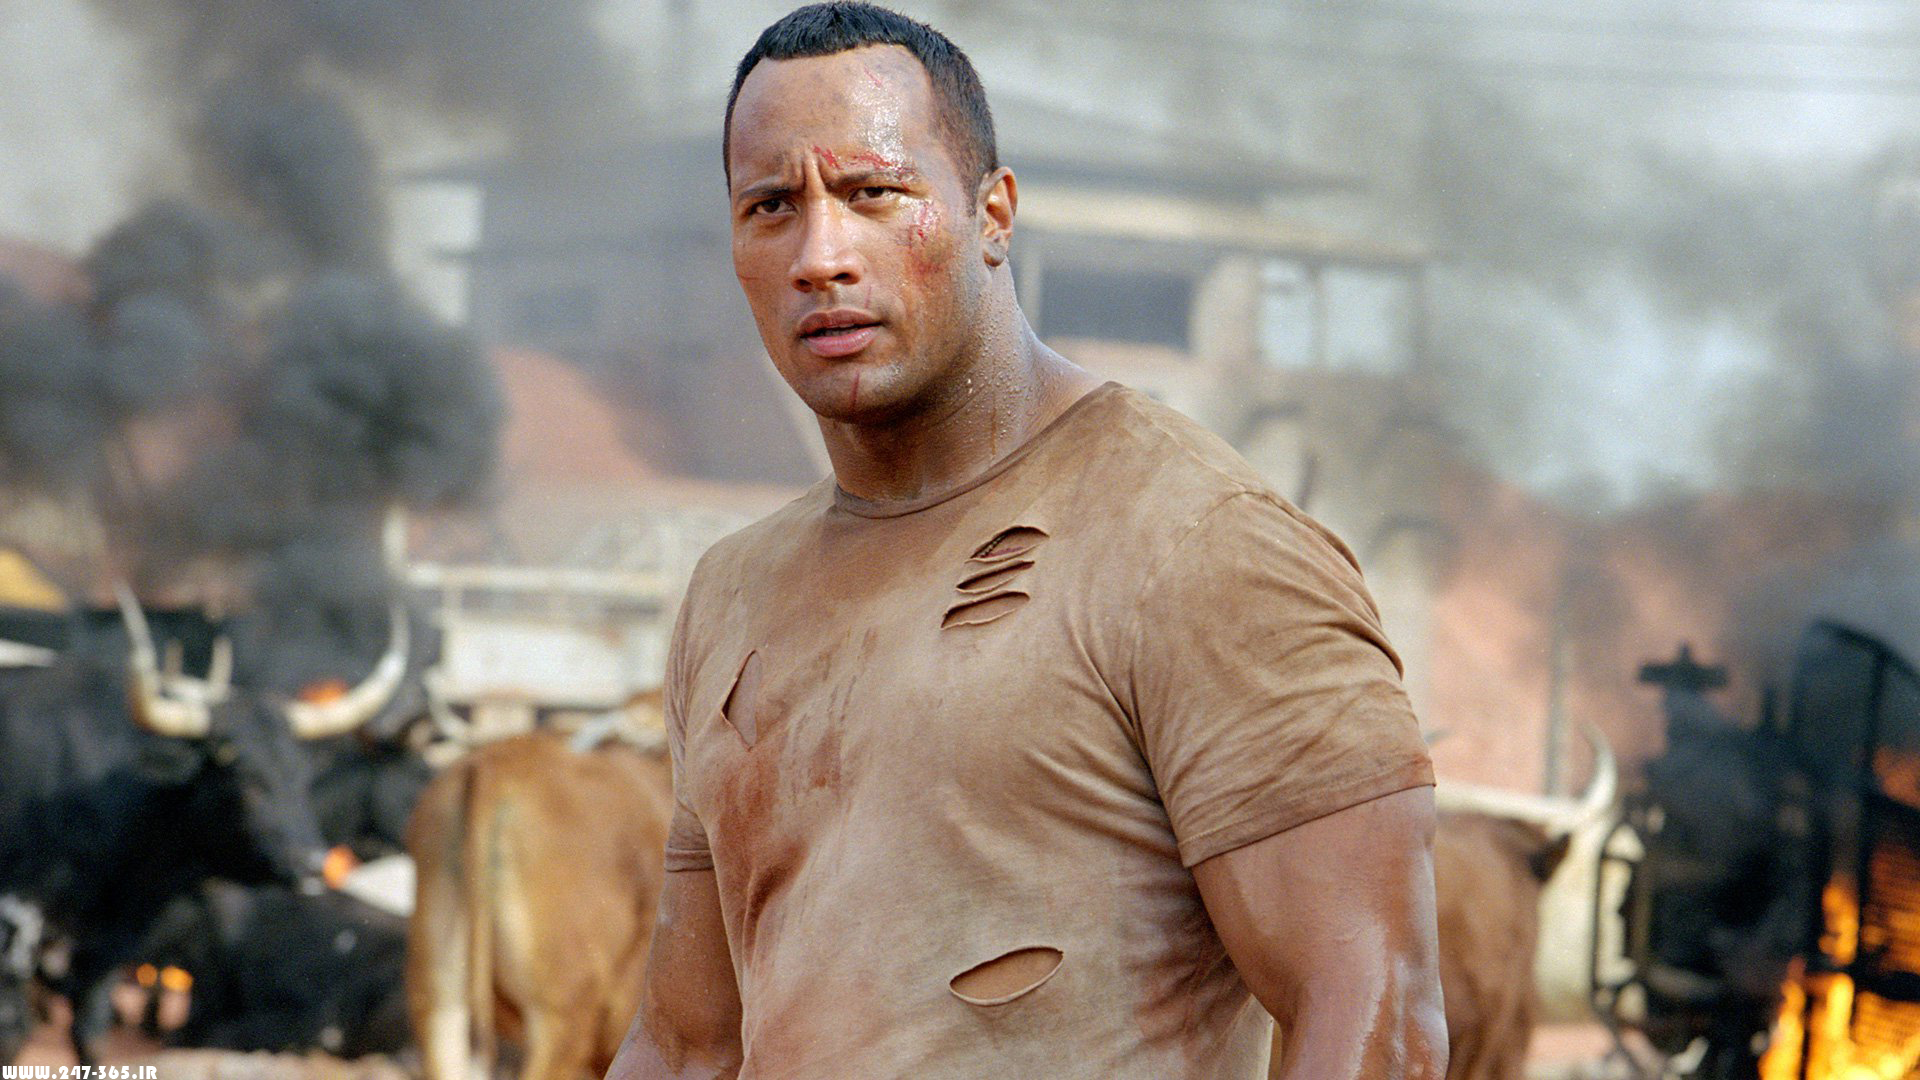 http://dl.247-365.ir/pic/celebrity/dwayne_johnson_2/Dwayne_Johnson_2_01.jpg